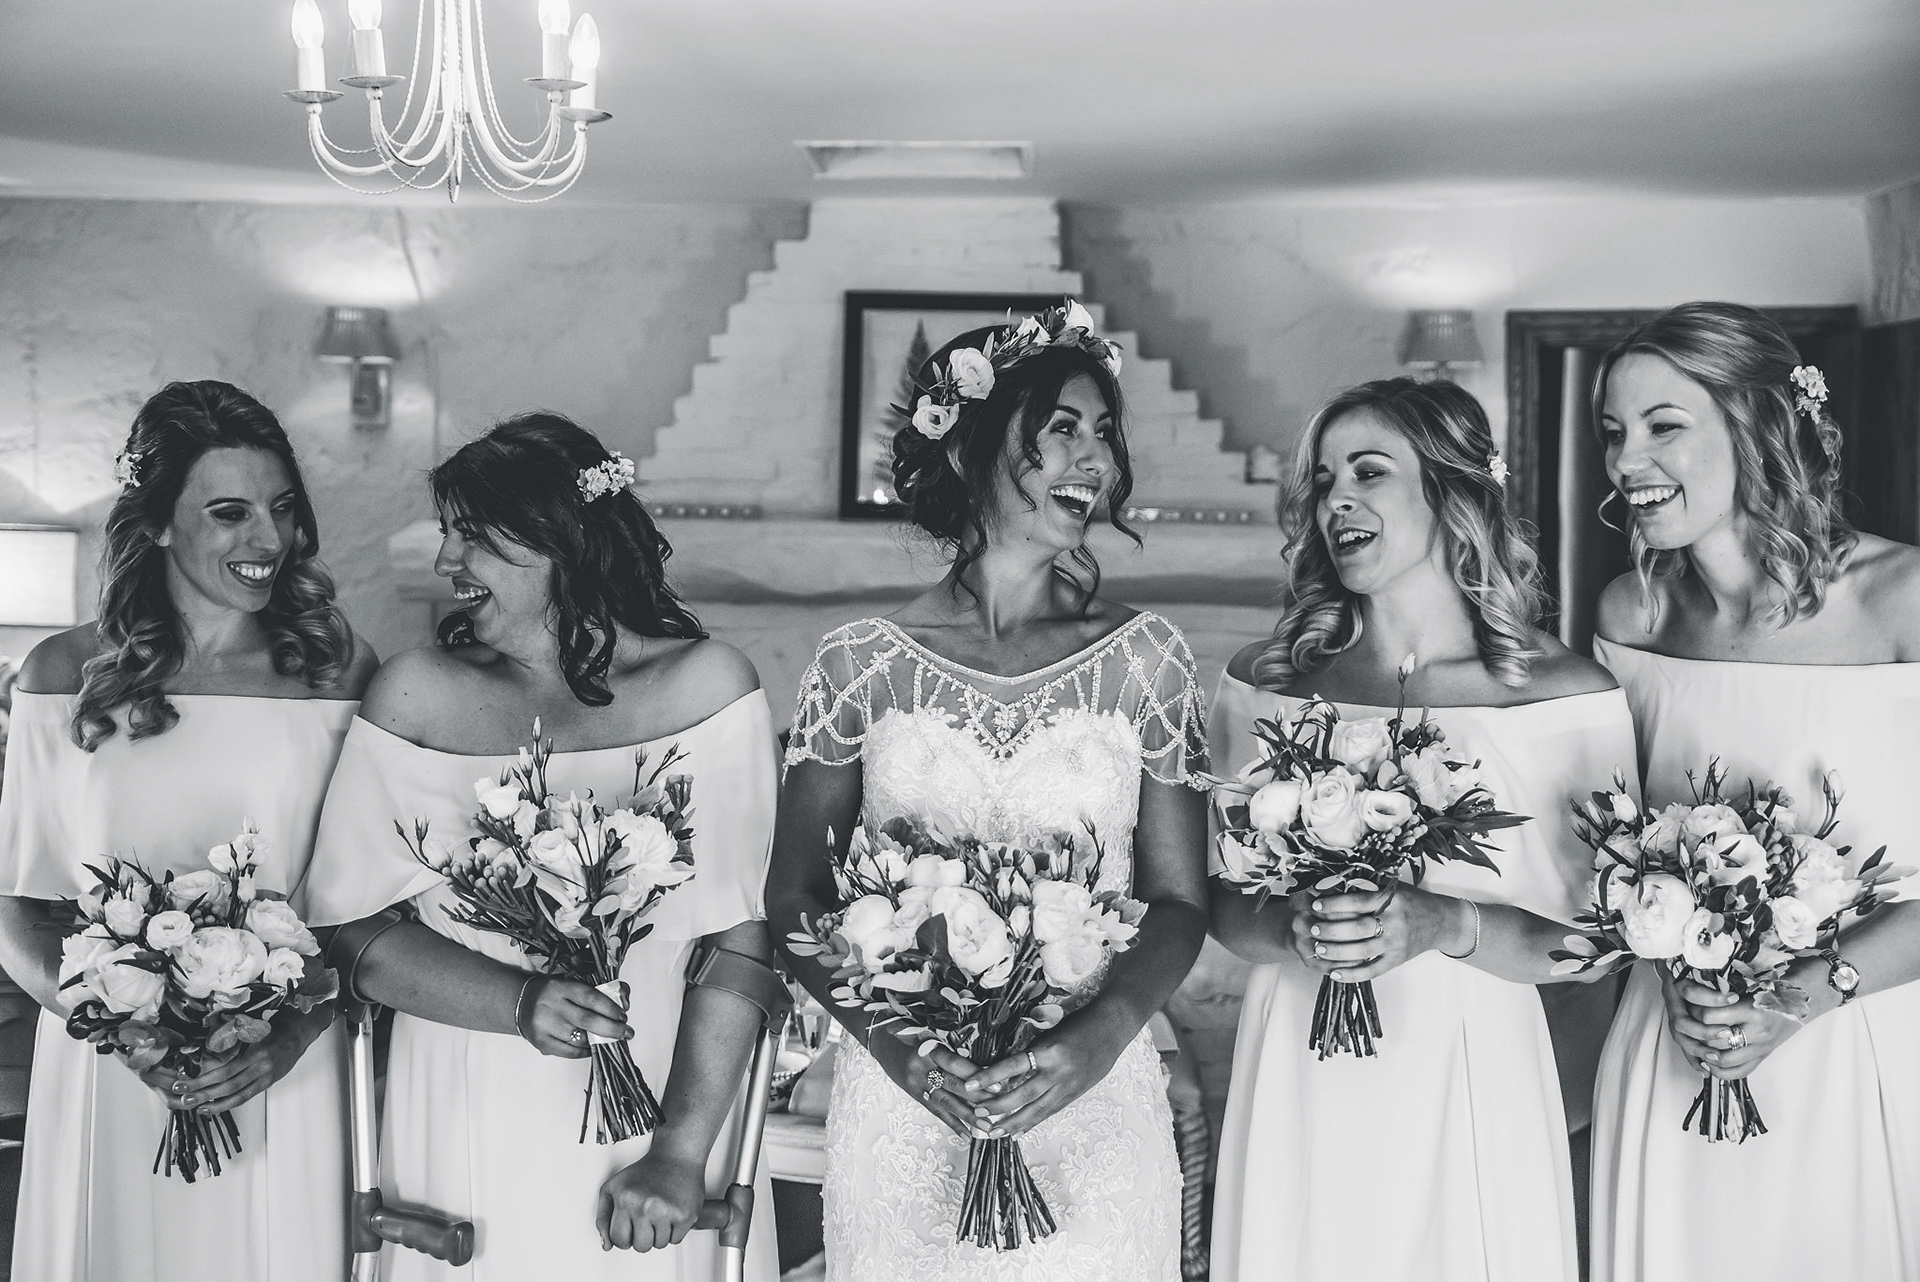 The happy bride and her bridesmaids have a wedding photo before wedding ceremony